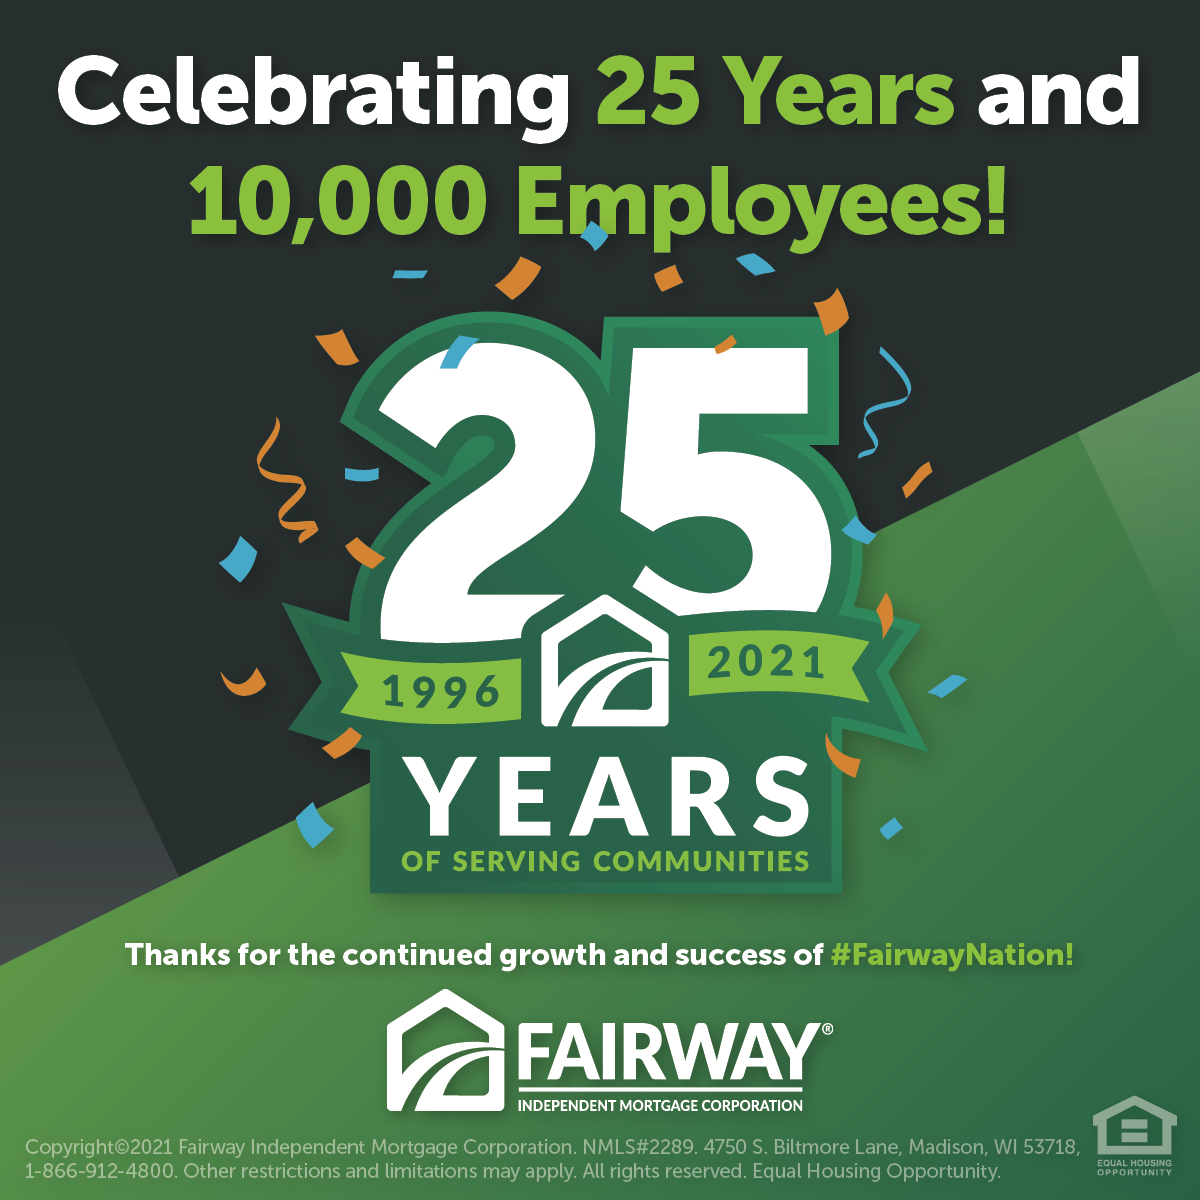 25 Year Anniversary of Fairway